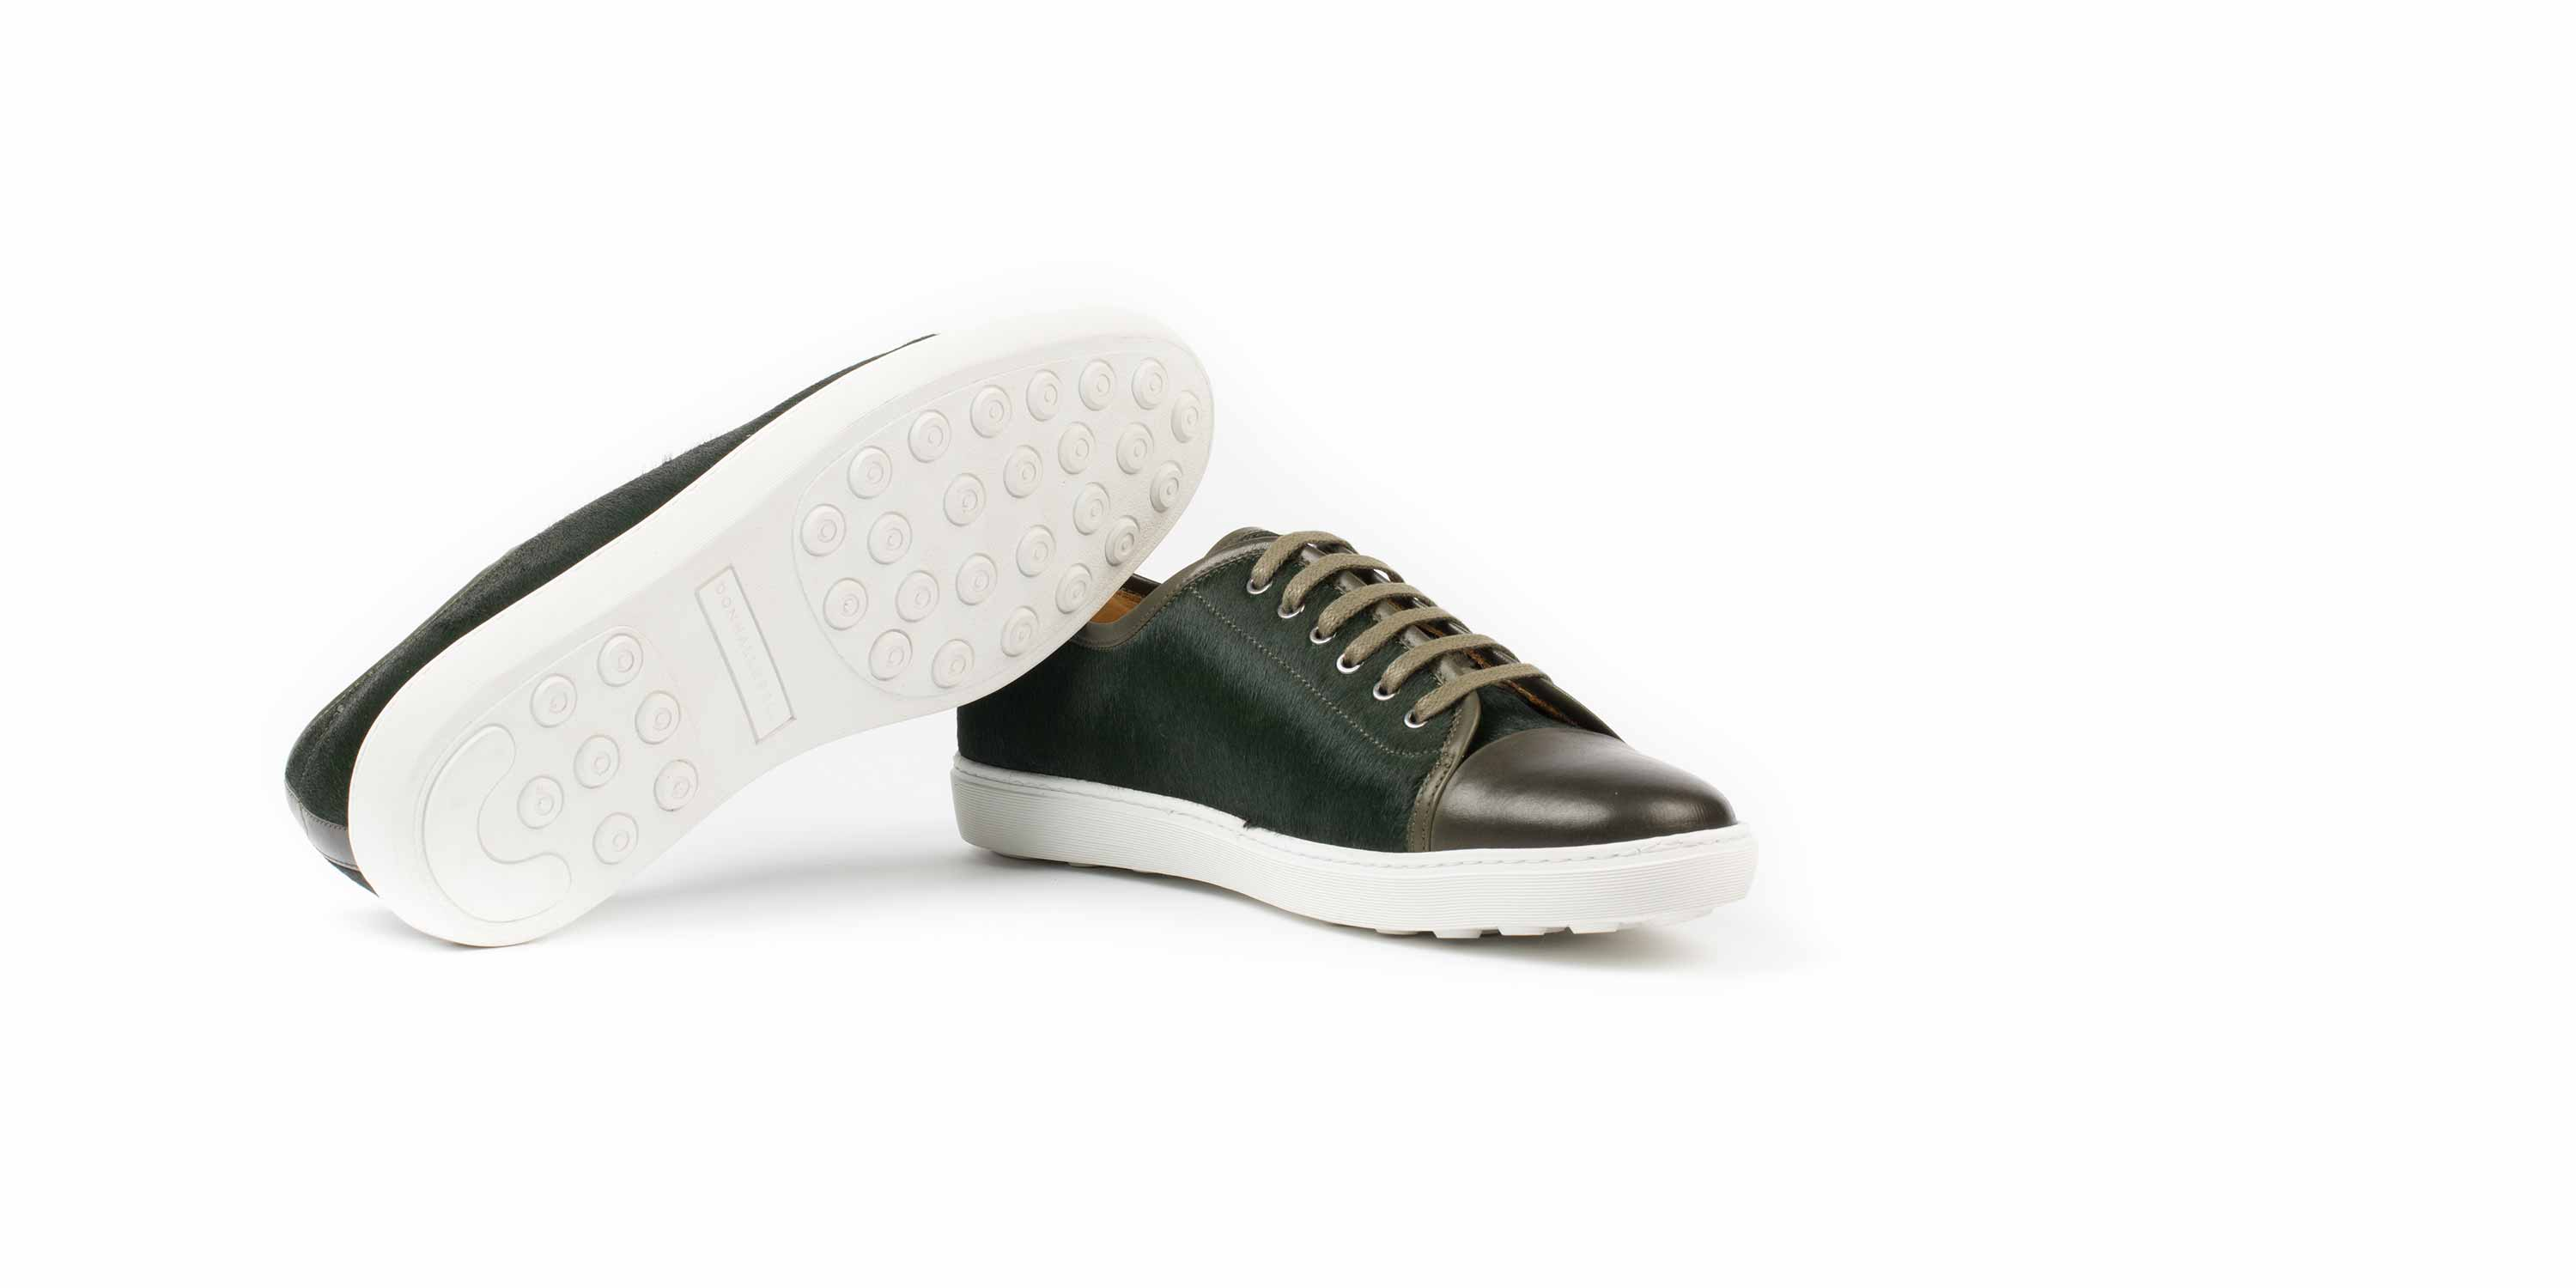 04_Redchurch-Sneaker_Dark-Green